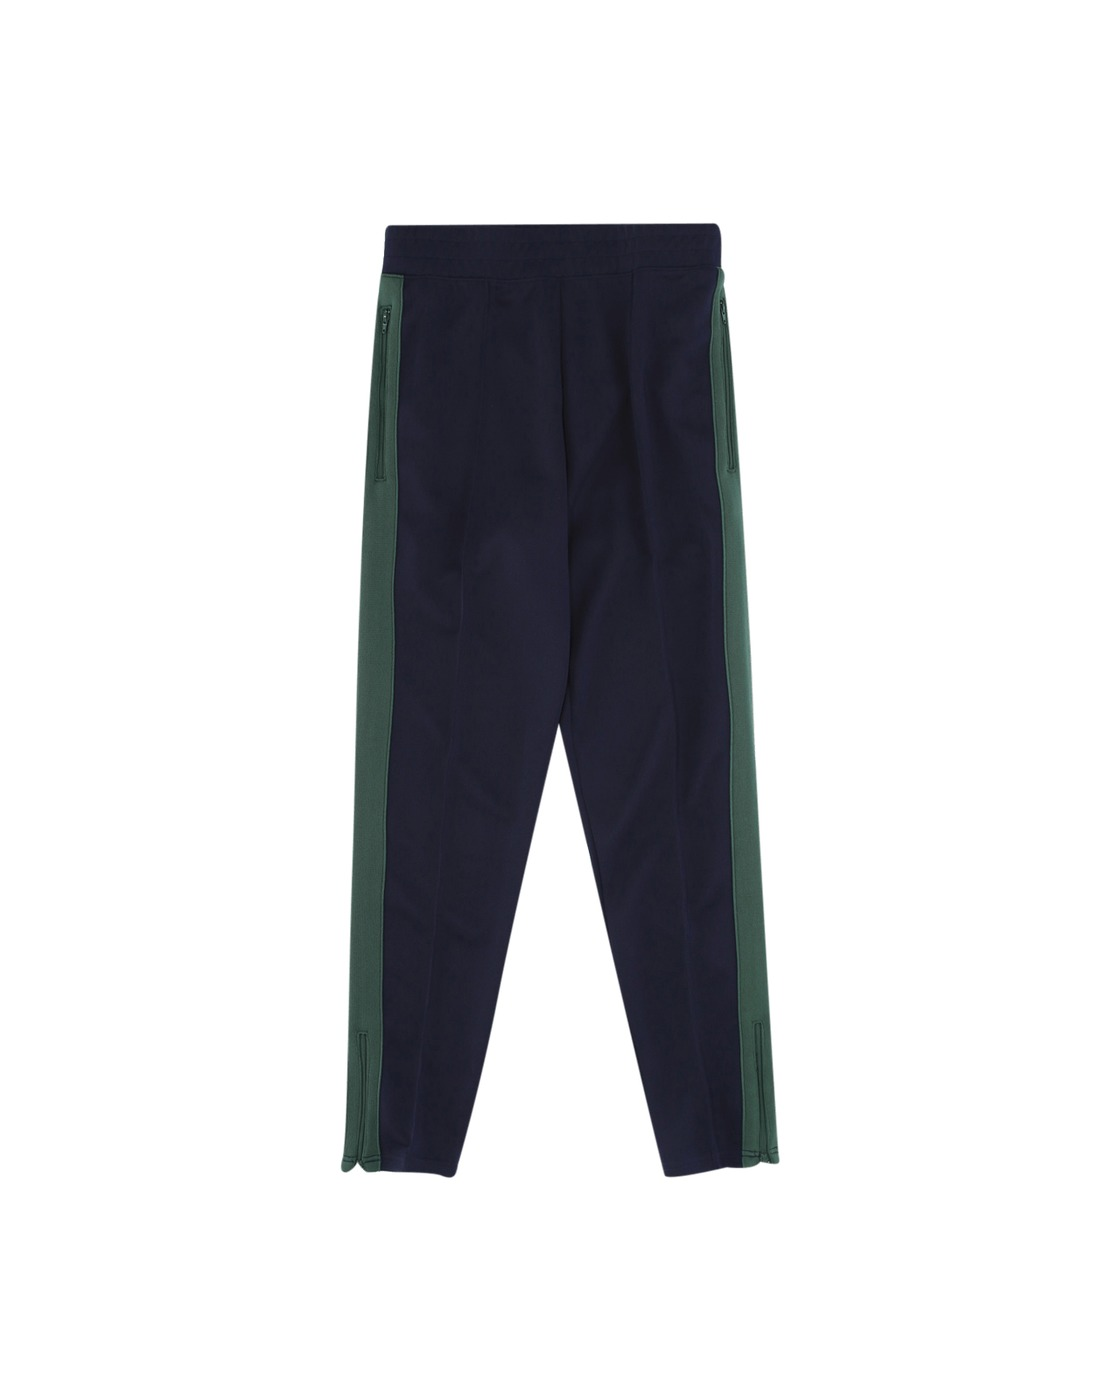 Nike Special Project Martine Rose Track Pants Black